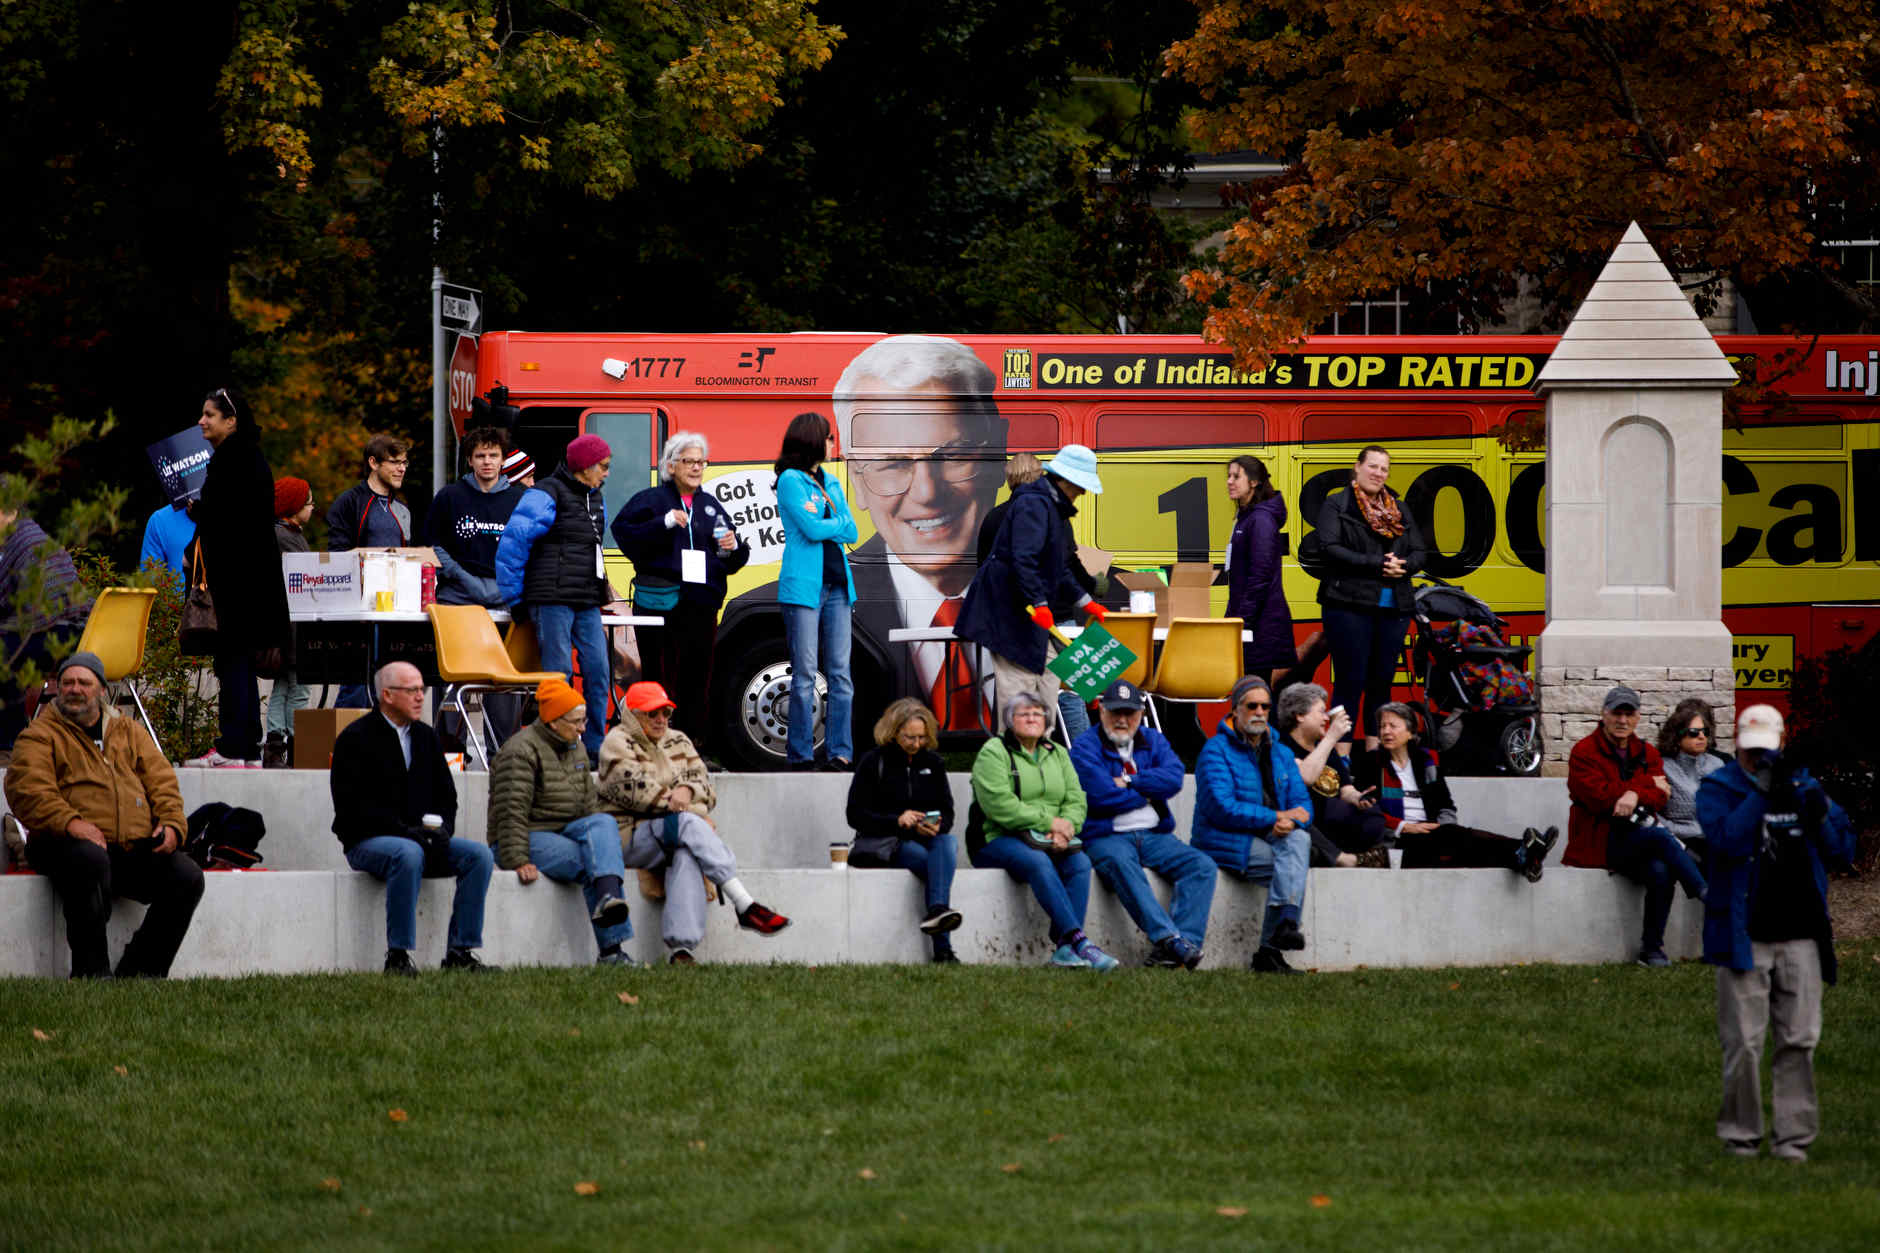 A bus featuring the image of Ken Nunn, a local personal injury lawyer, passes as supporters await the arrival of U.S. Sen. Bernie Sanders, I-VT, at a rally for Liz Watson, the Democratic nominee for Indiana's 9th congressional district, in Dunn Meadow at Indiana University Bloomington on Friday, Oct. 19, 2018. (James Brosher/IU Communications)